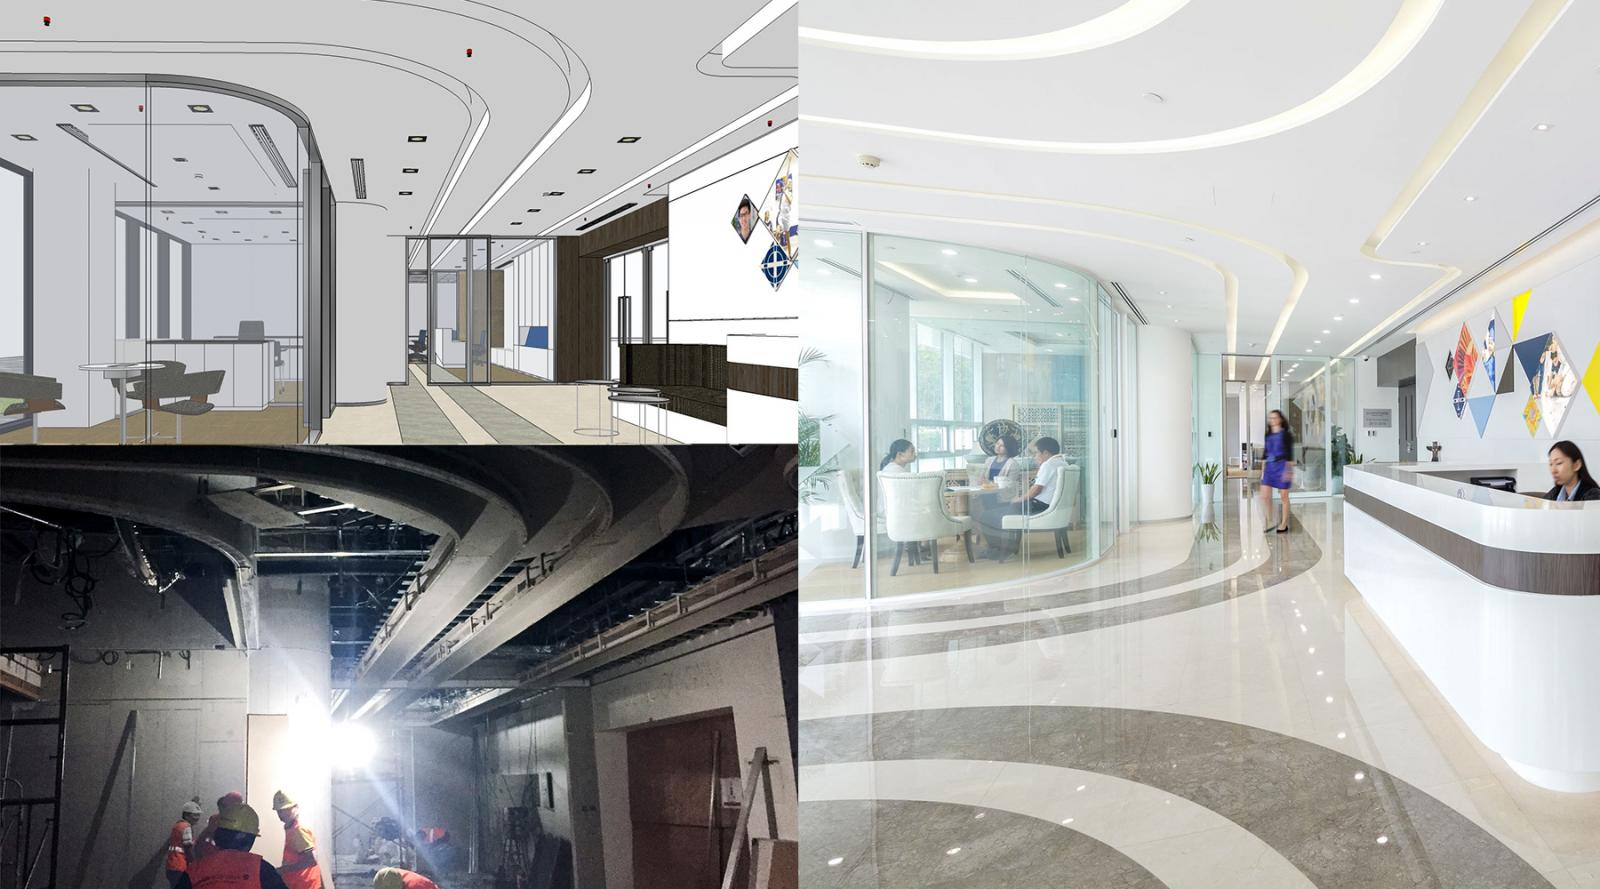 Before, during, and after the build. A slick reception area is created.